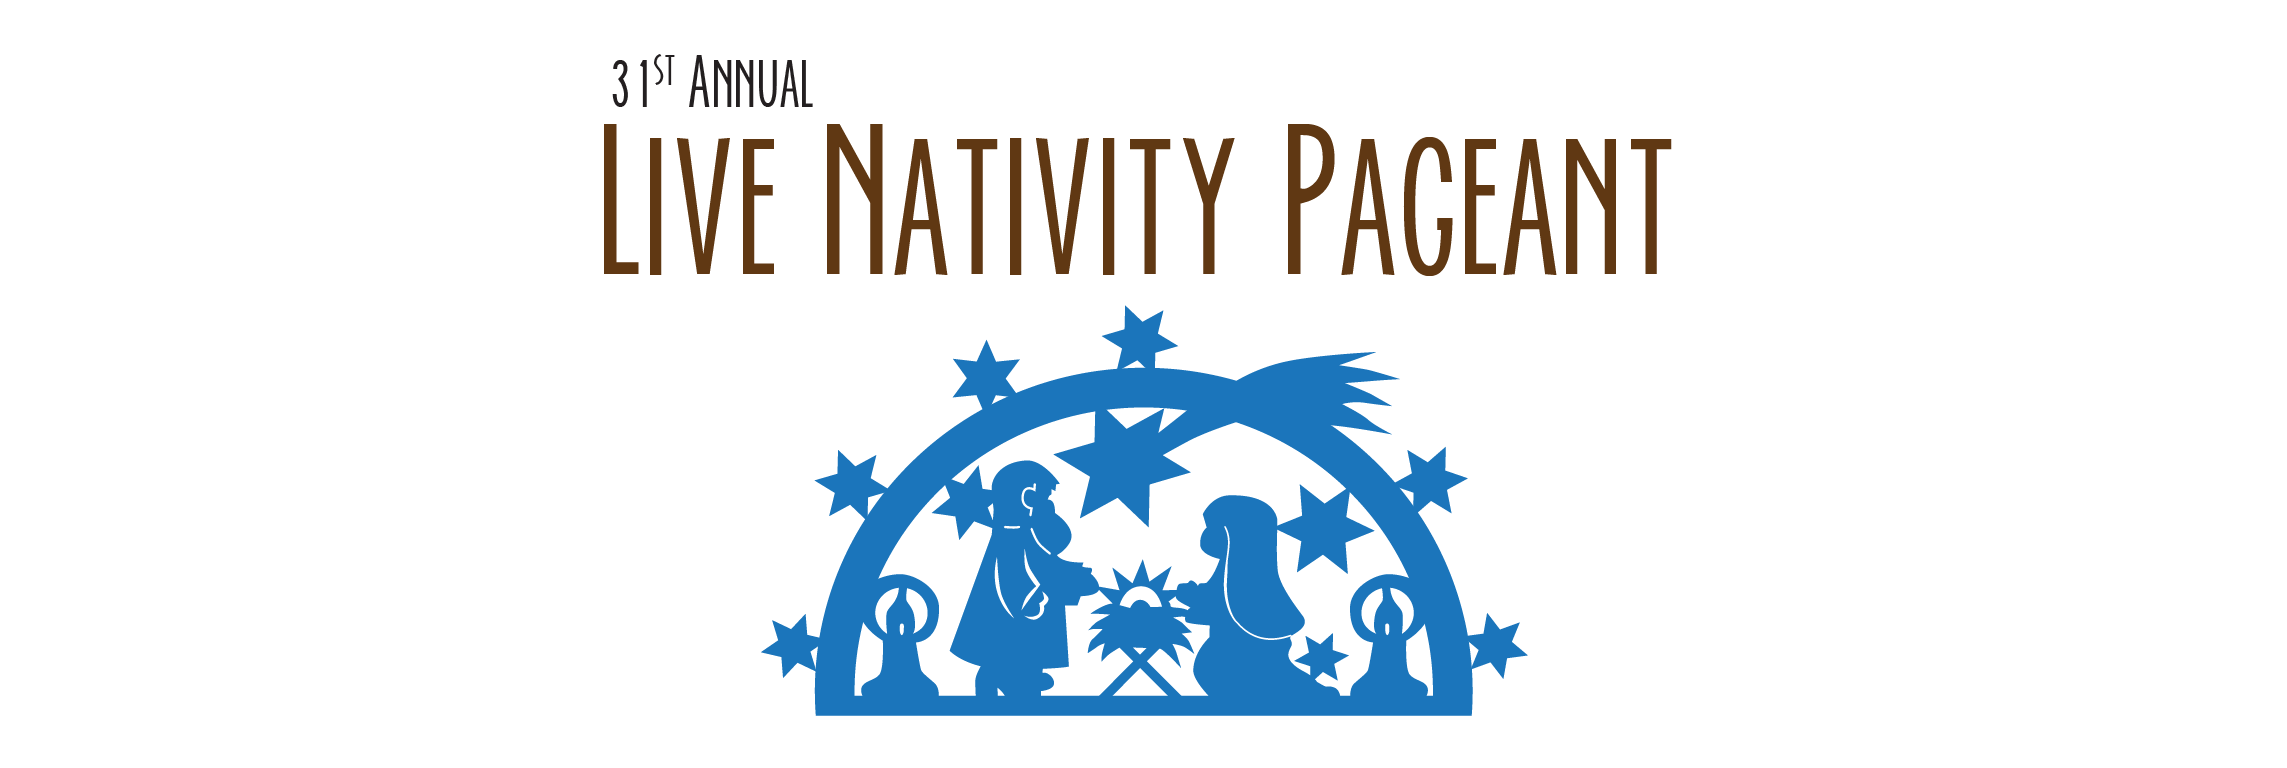 Nativity Pageant_2018-Webbanner-final-01.png